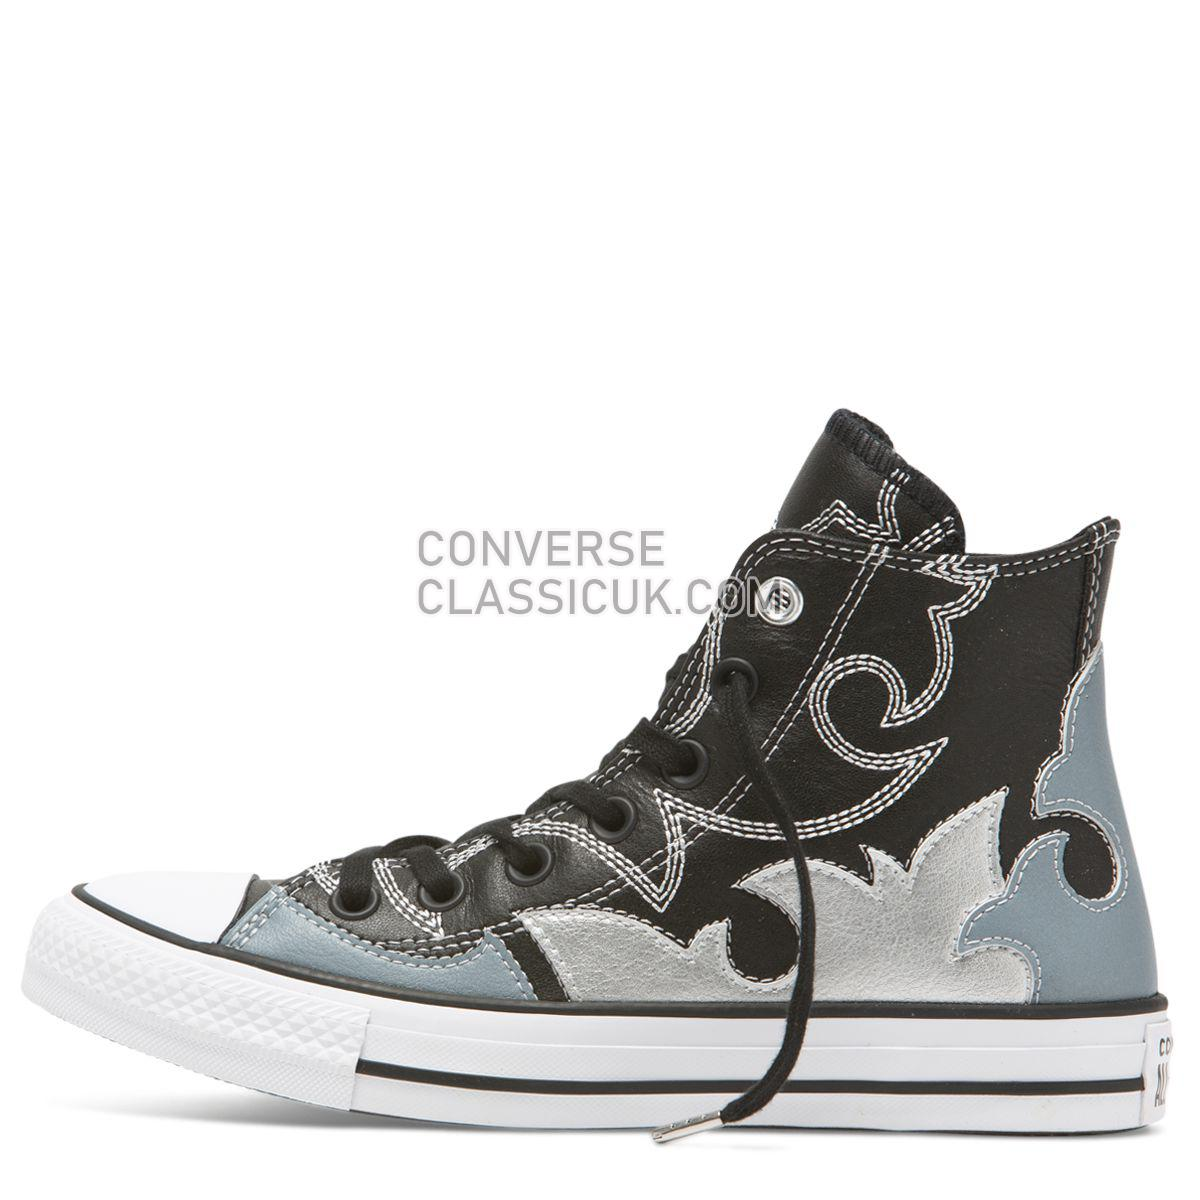 Converse Chuck Taylor All Star Fashion Week High Top Black Womens 564953 Black/Antique Blue/Pure Silver Shoes